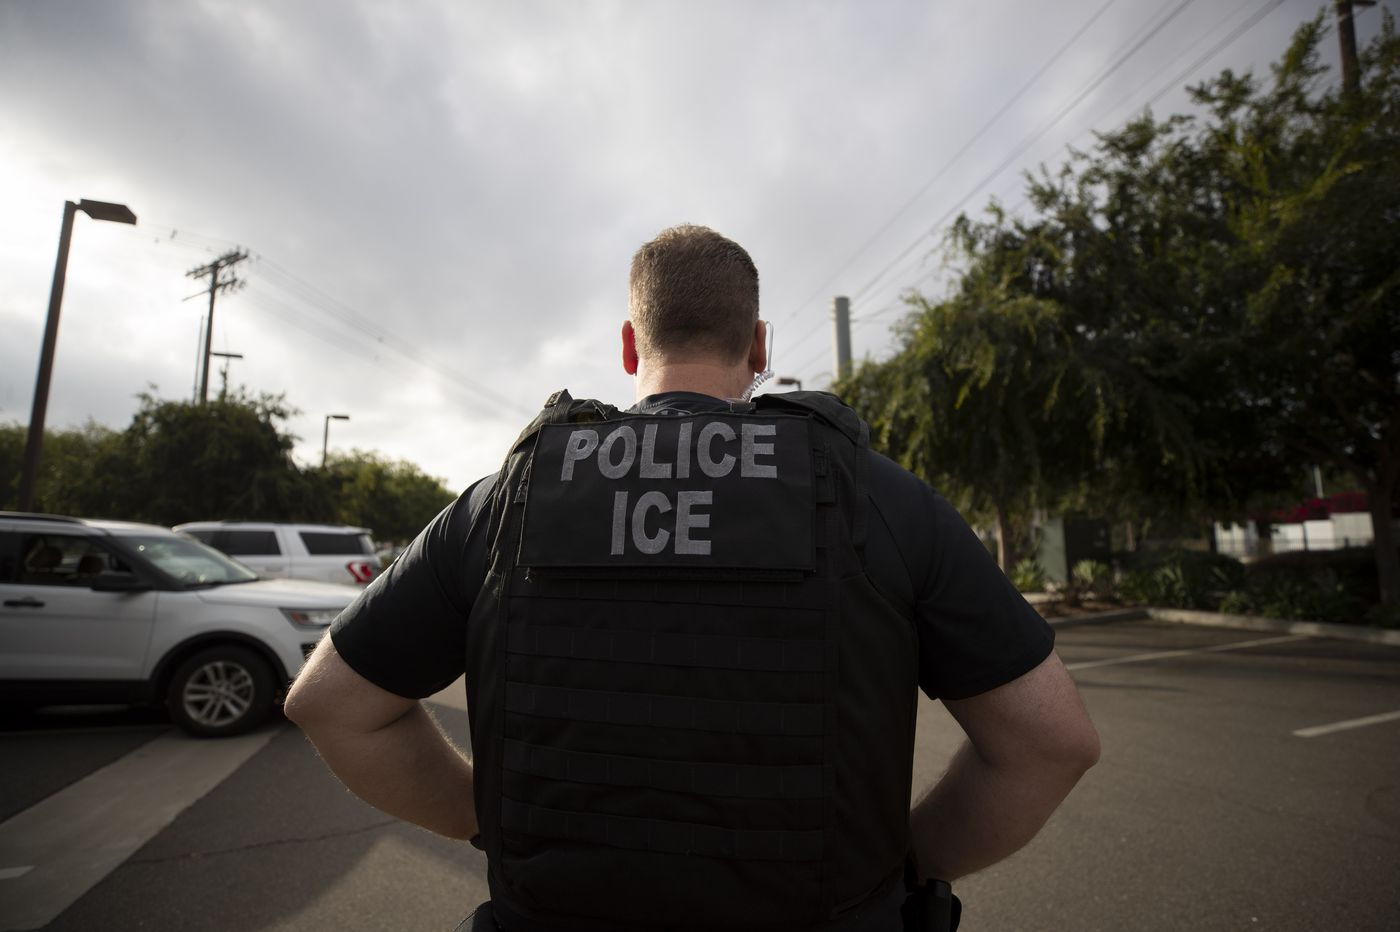 ICE puts up billboards denouncing sanctuary policies for immigrants in cities like Philadelphia